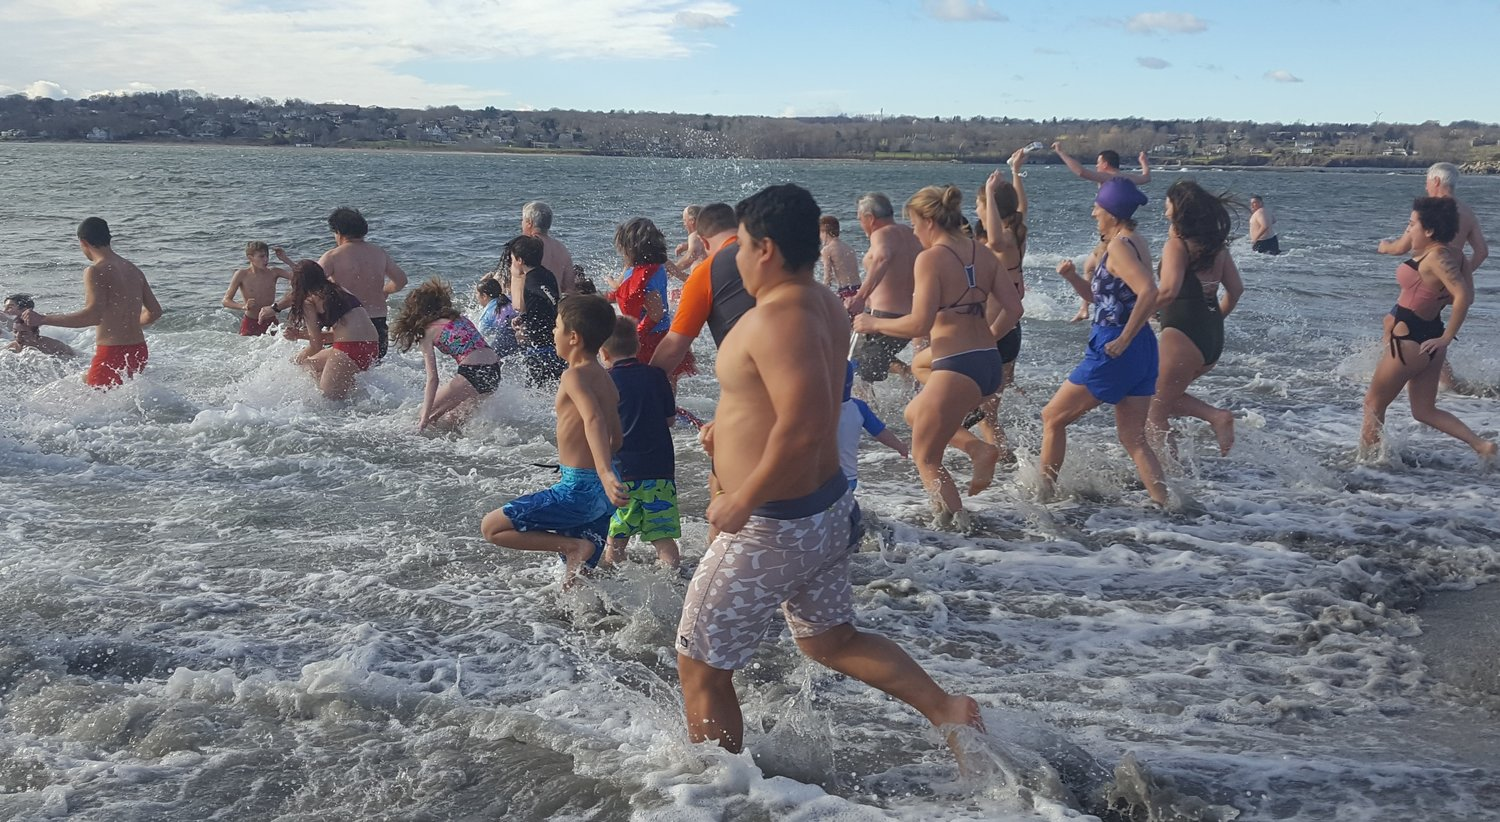 Brave souls dash into the Sakonnet River last New Year's Day at Fogland Beach in Tiverton. This New Year's Day, the event will be back at Grinnell's Beach, its usual home.